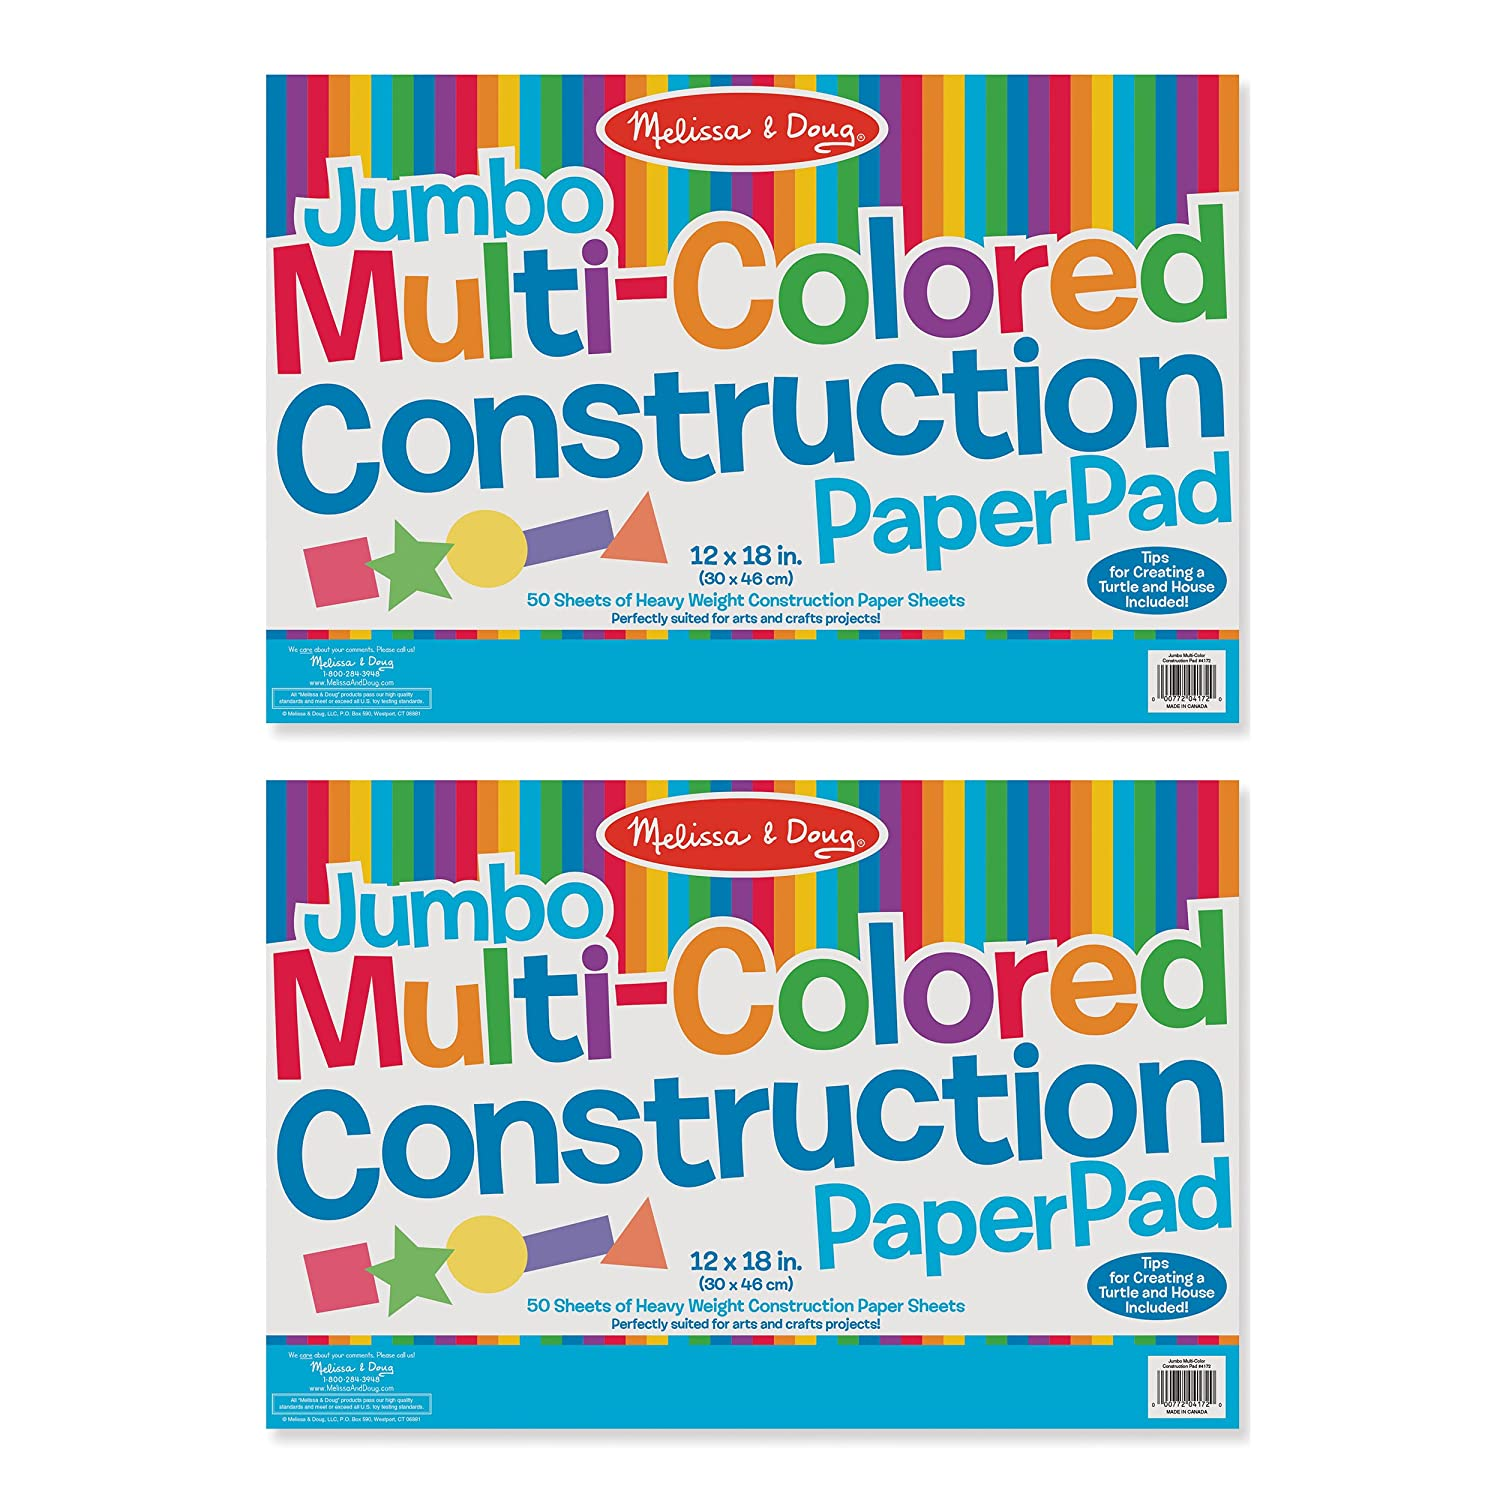 Melissa & Doug Jumbo Multi-Colored Construction Paper Pad (12 x 18 inches) With 50 Sheets 4172